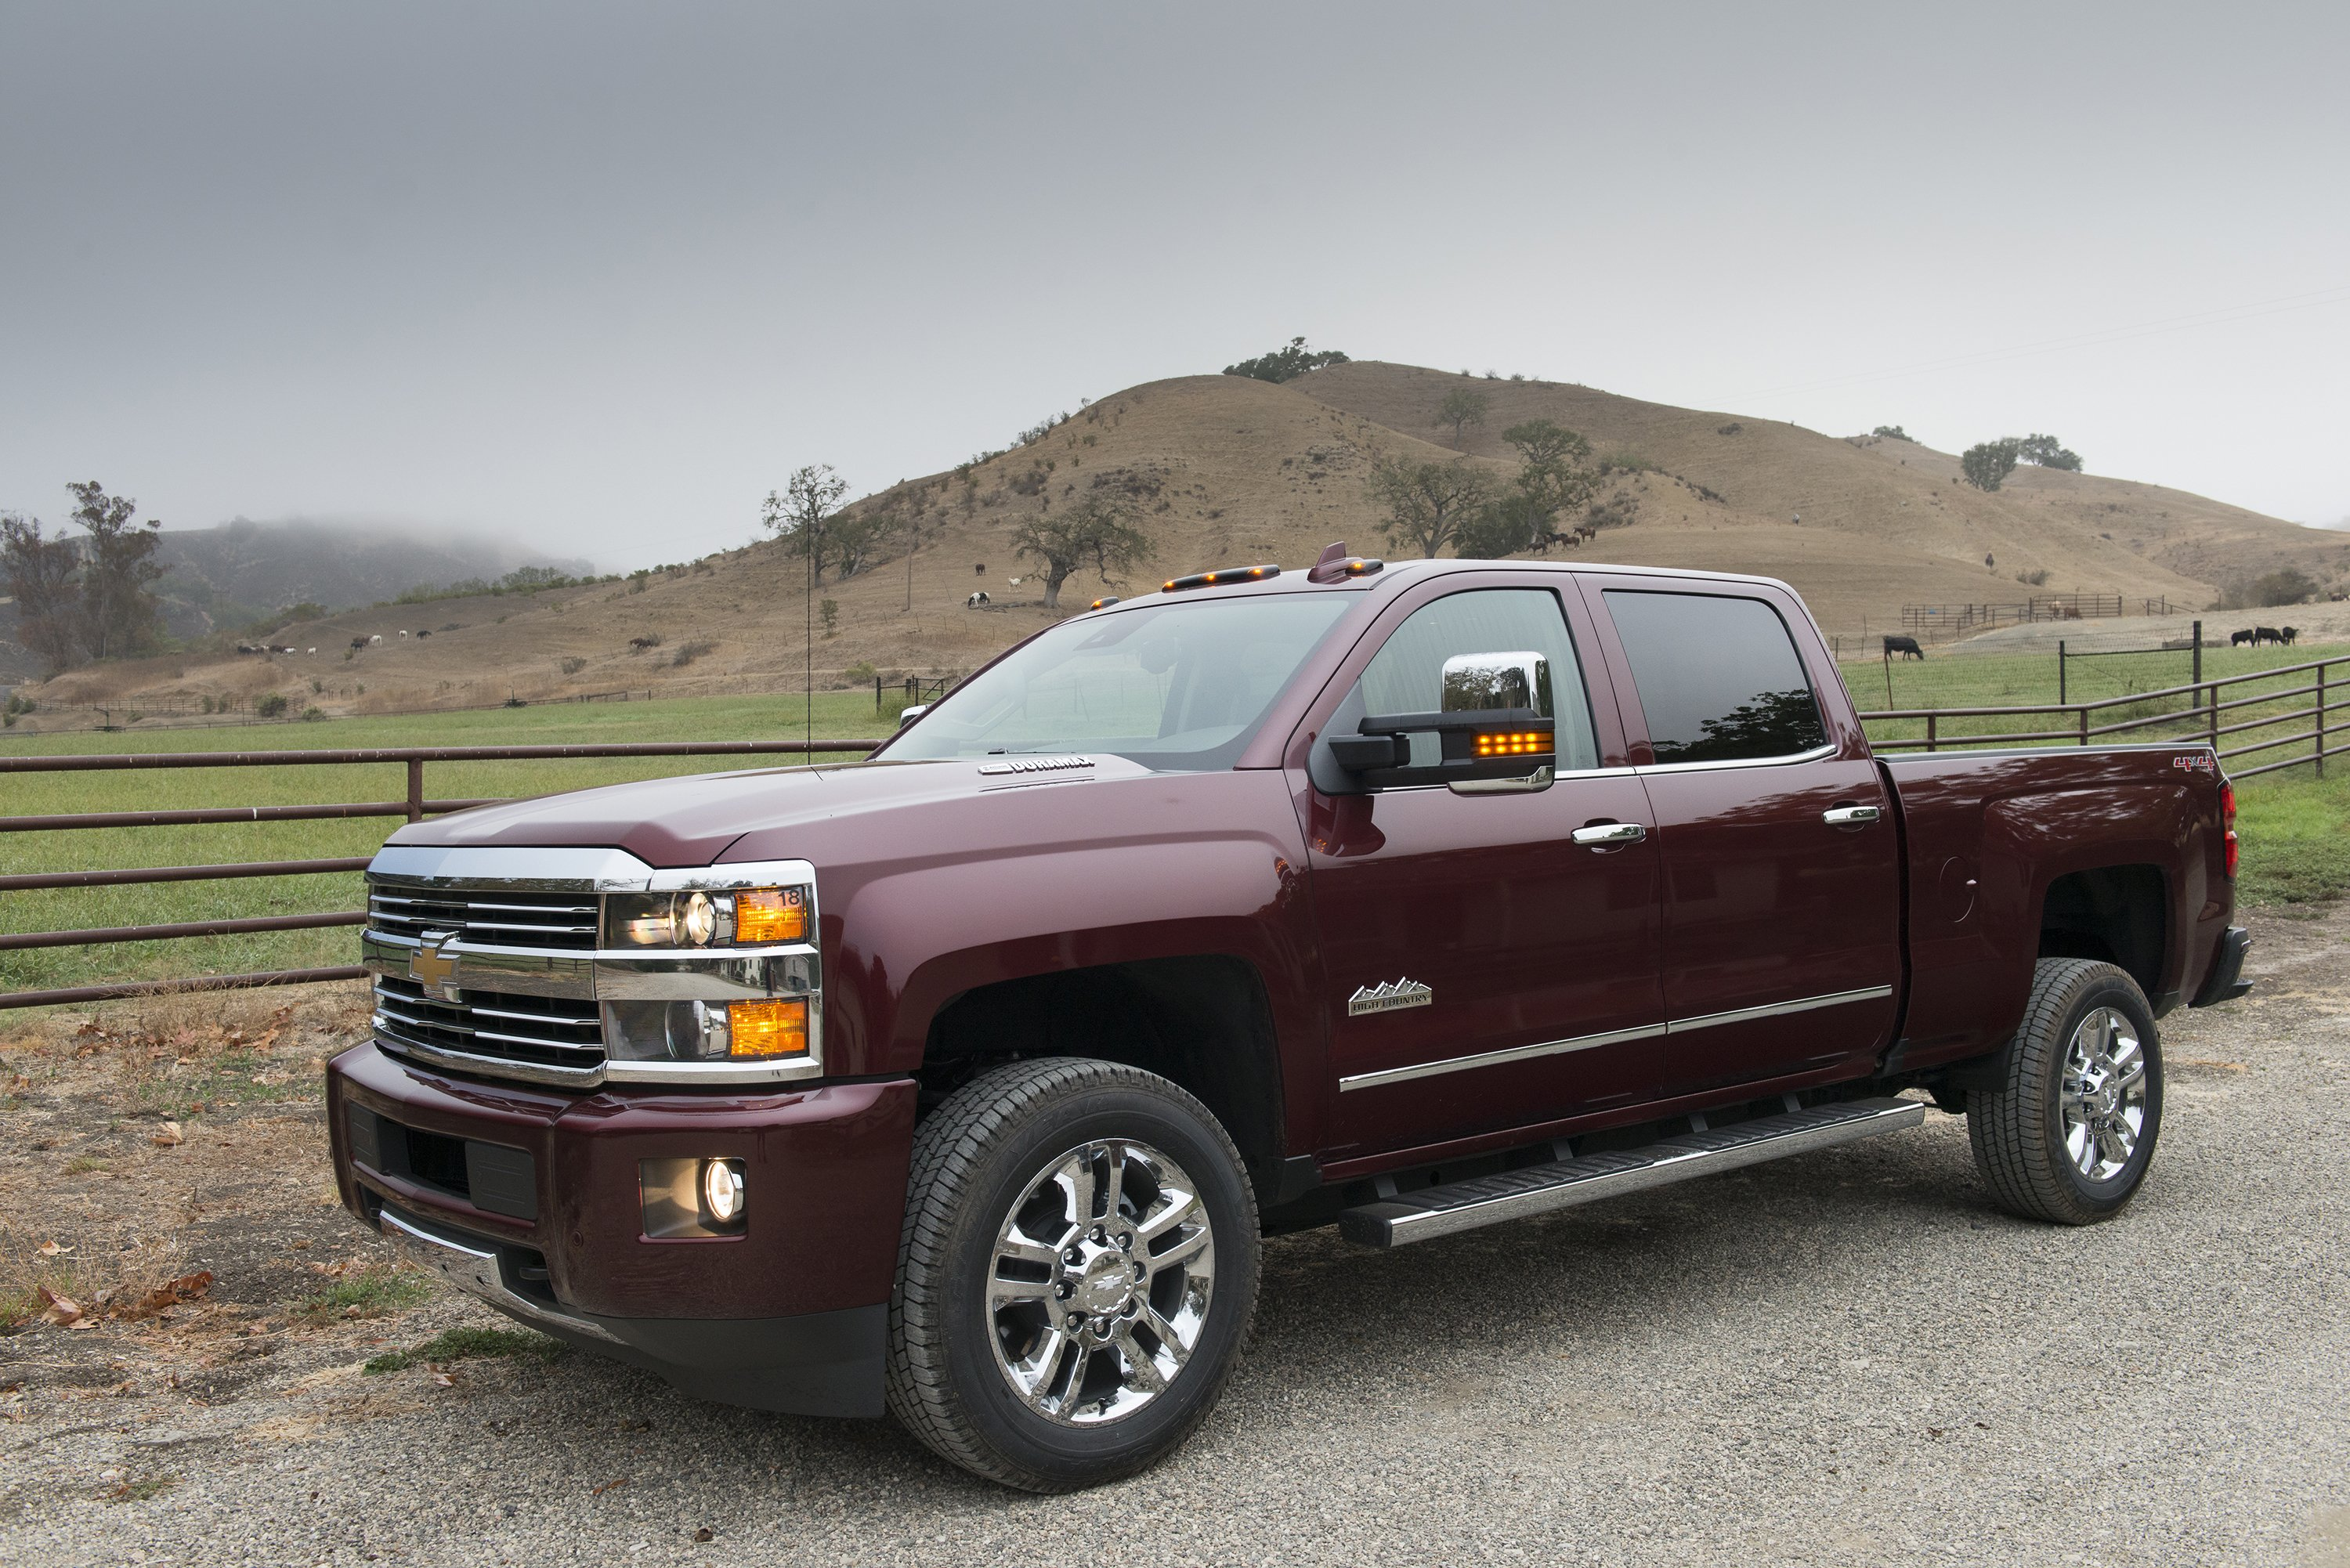 2016 Chevrolet Silverado 2500 H D High Country Crew Cab Pickup Wallpaper 3000x2002 815012 Wallpaperup